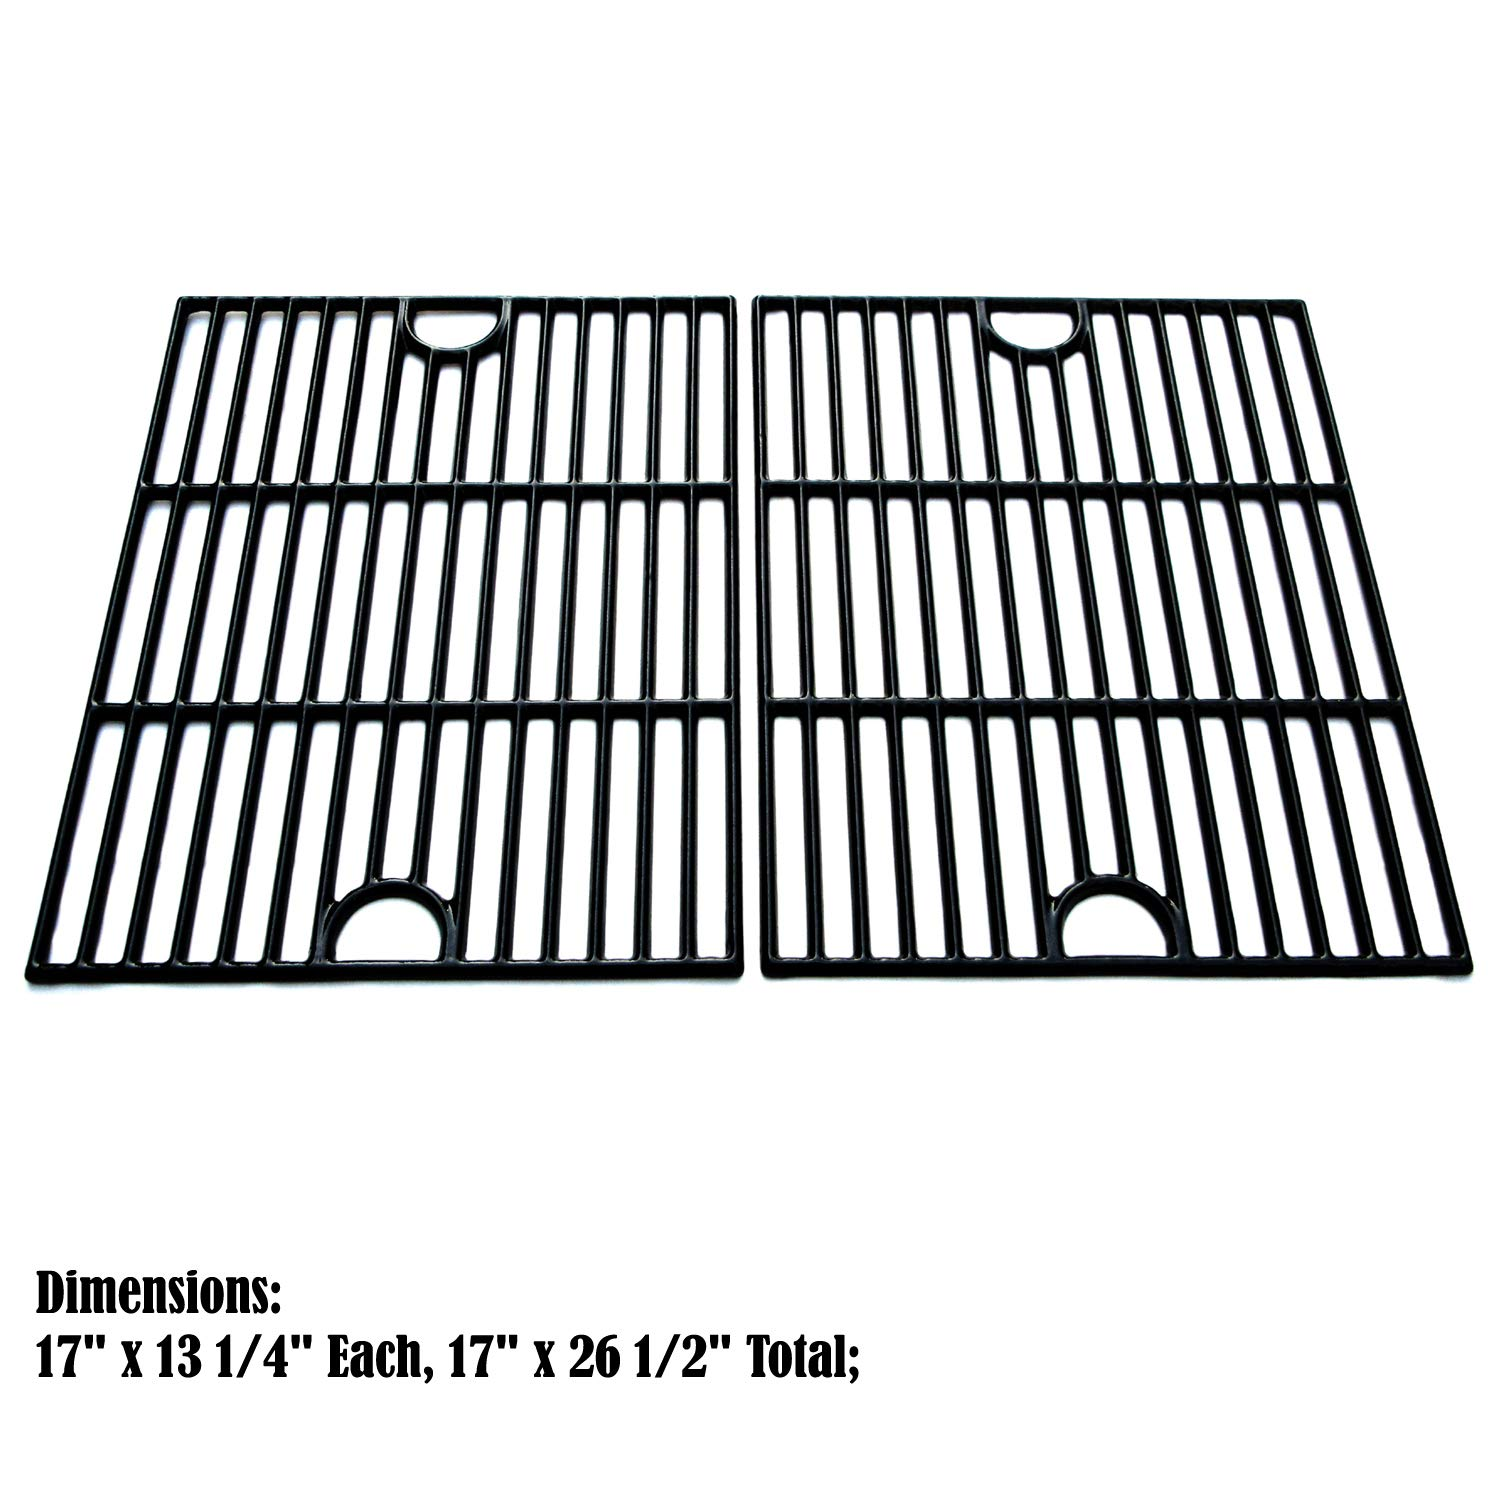 Direct store Parts DC104 Porcelain Cast Iron Cooking grid Replacement Kenmore, Uniflame, K-Mart, Nexgrill, Uberhaus Gas Grill